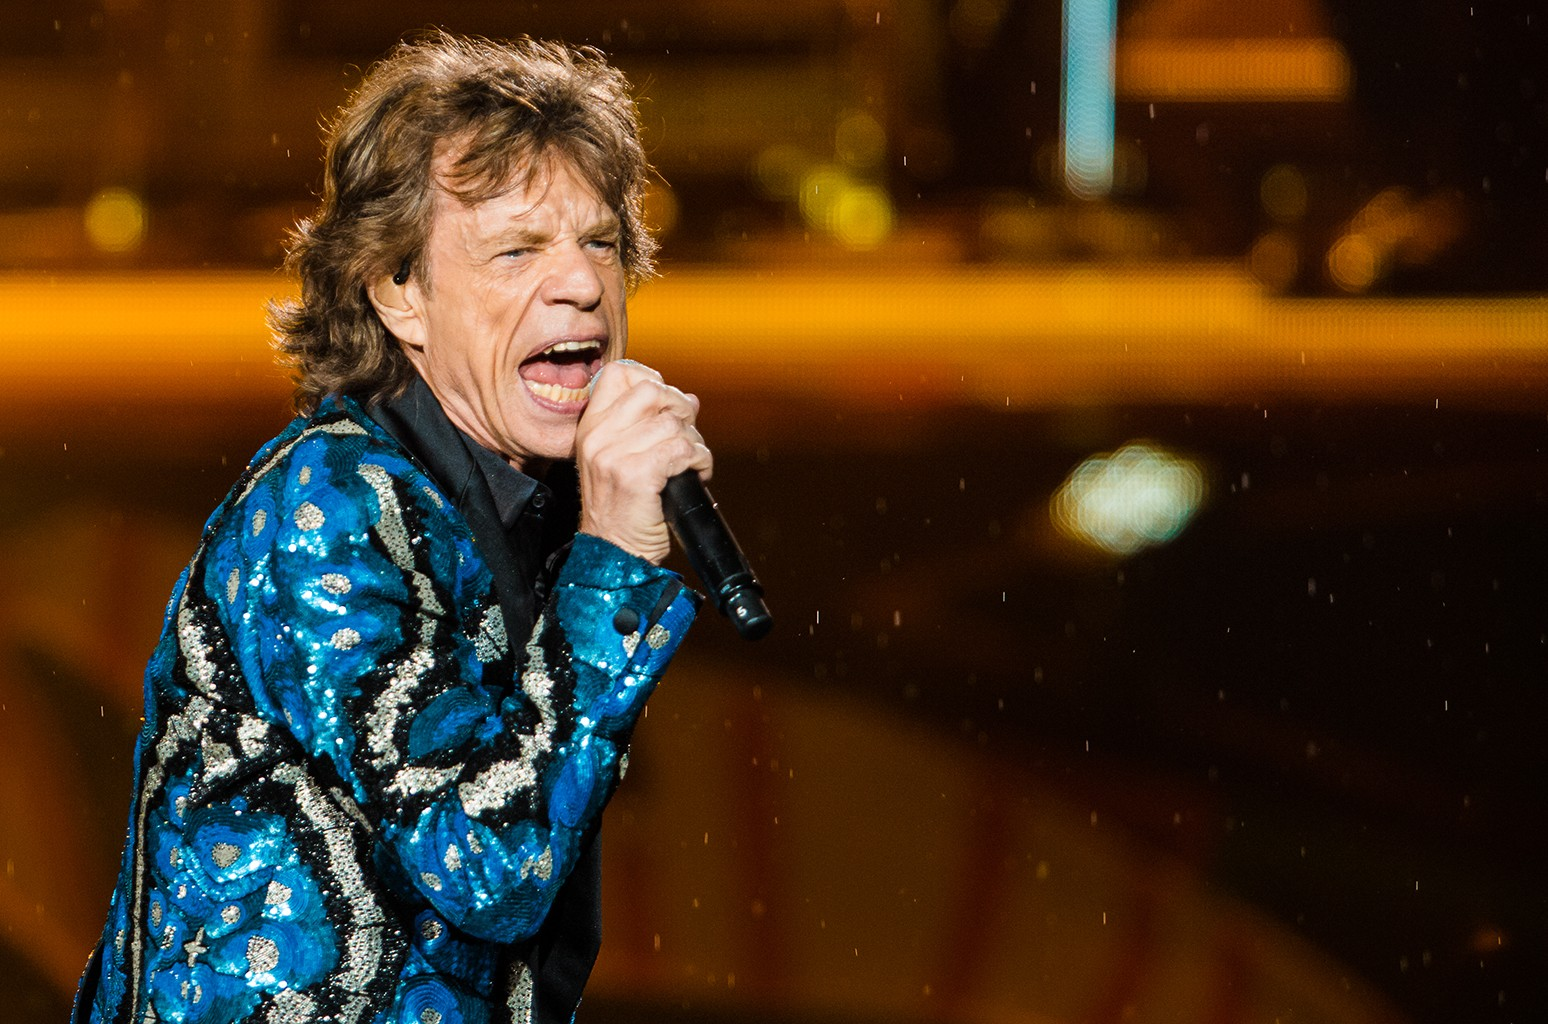 The Rolling Stones perform in Brazil